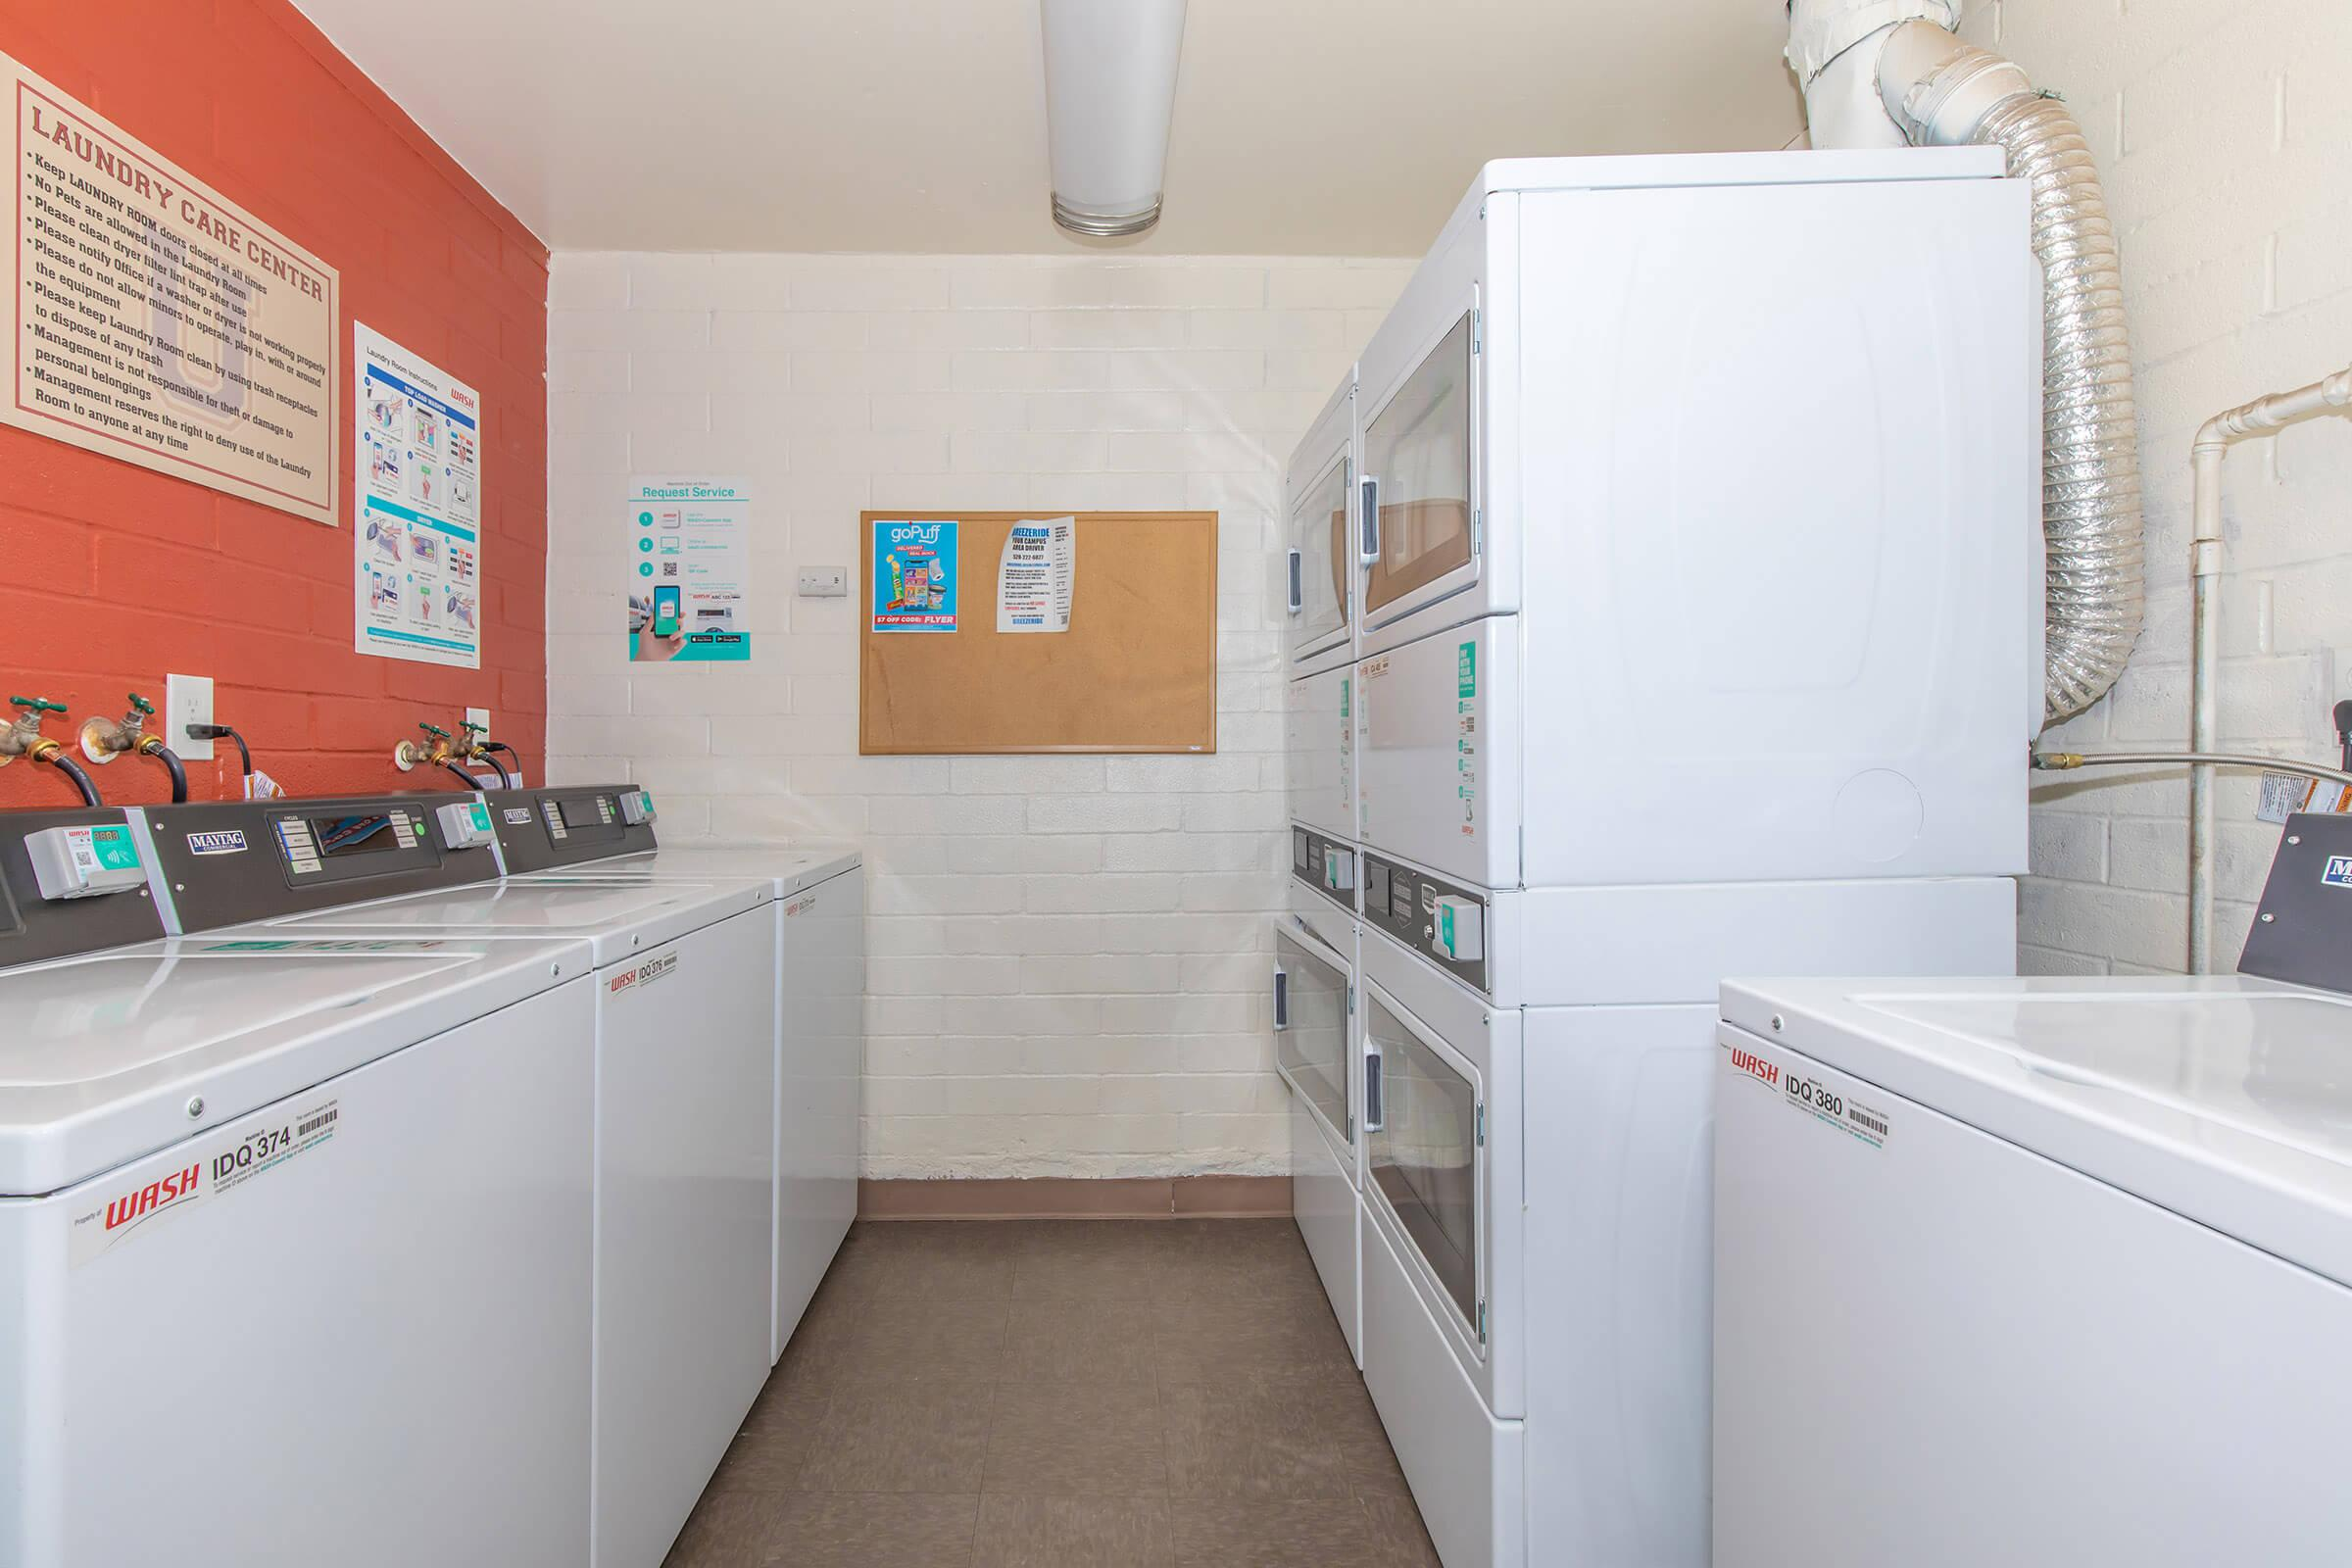 a kitchen with a refrigerator and a microwave